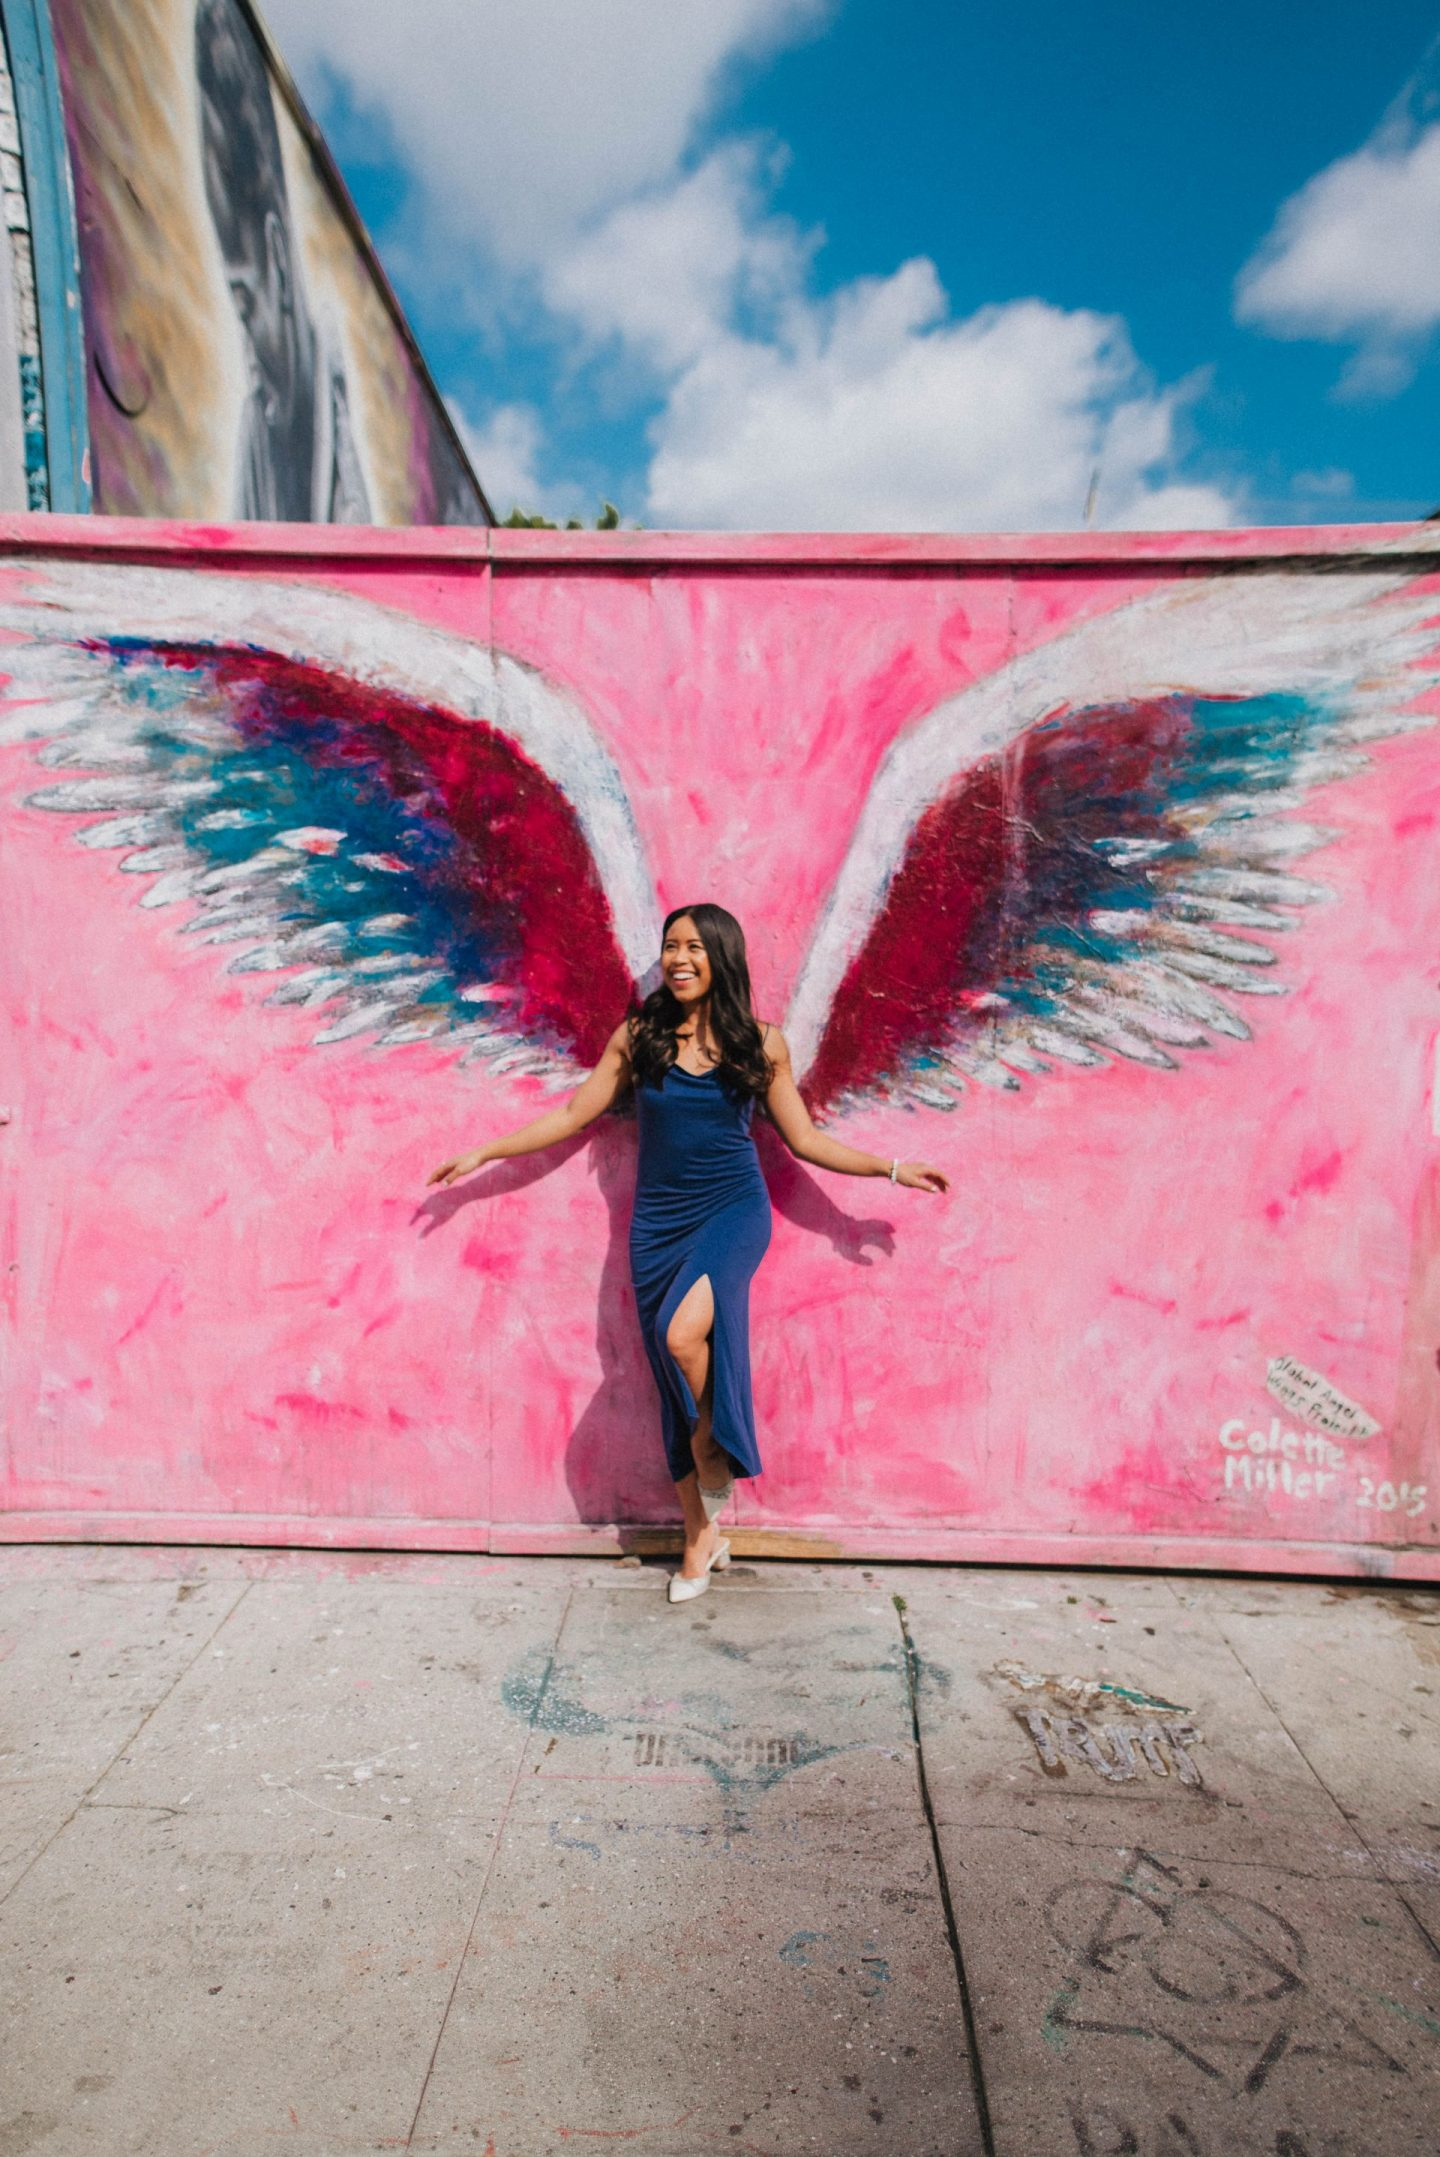 Cool photo shoot locations in los angeles – most Instagram worthy spots in los angeles – LA's most Instagrammable places Melrose avenue – Instagram spots in LA – Instagram spots Melrose Avenue los angeles